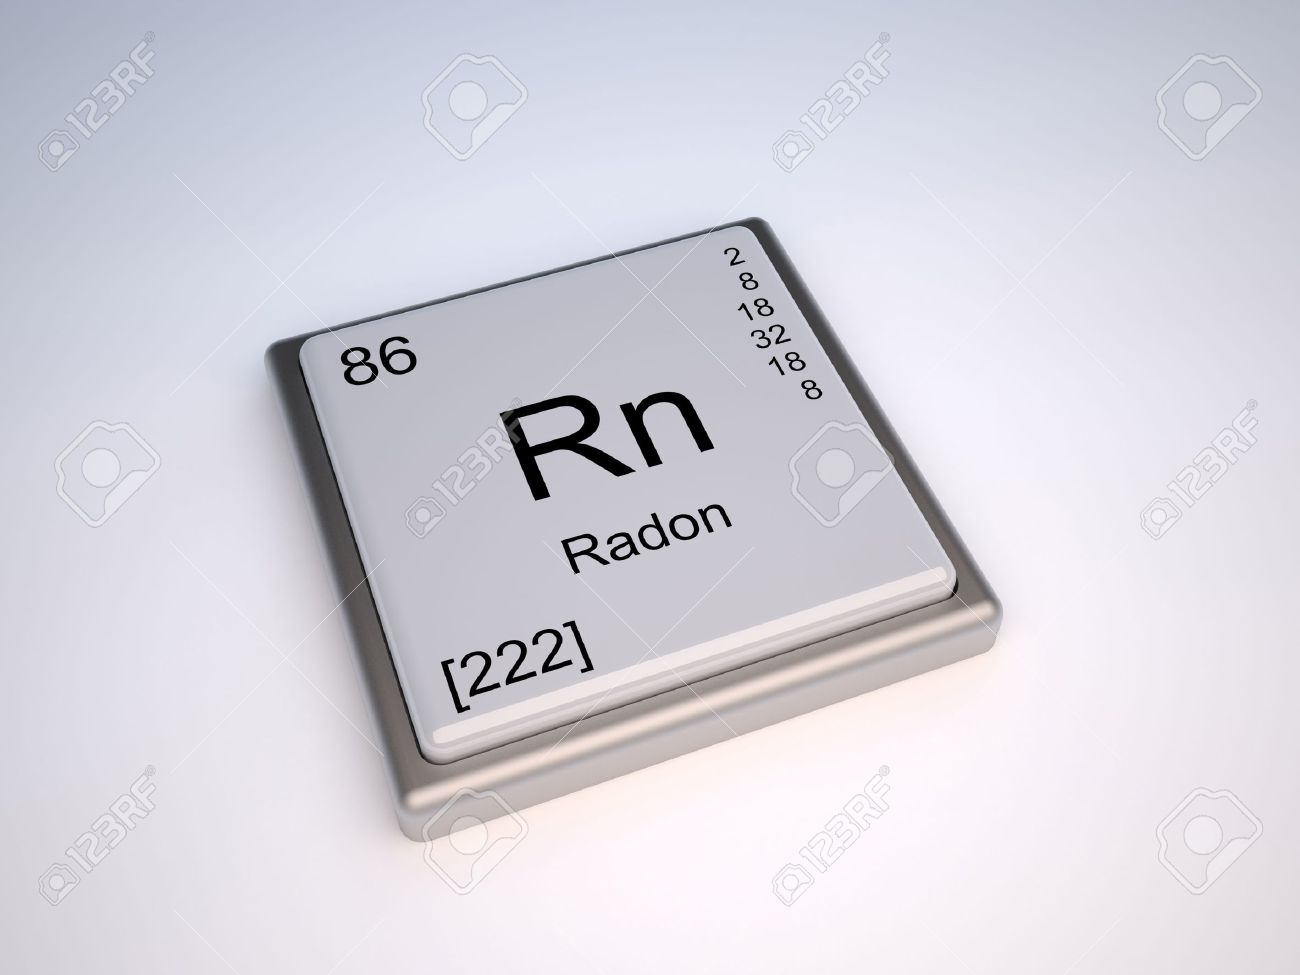 Radon symbol periodic table choice image periodic table images radon symbol periodic table gallery periodic table images radon symbol periodic table images periodic table images gamestrikefo Images